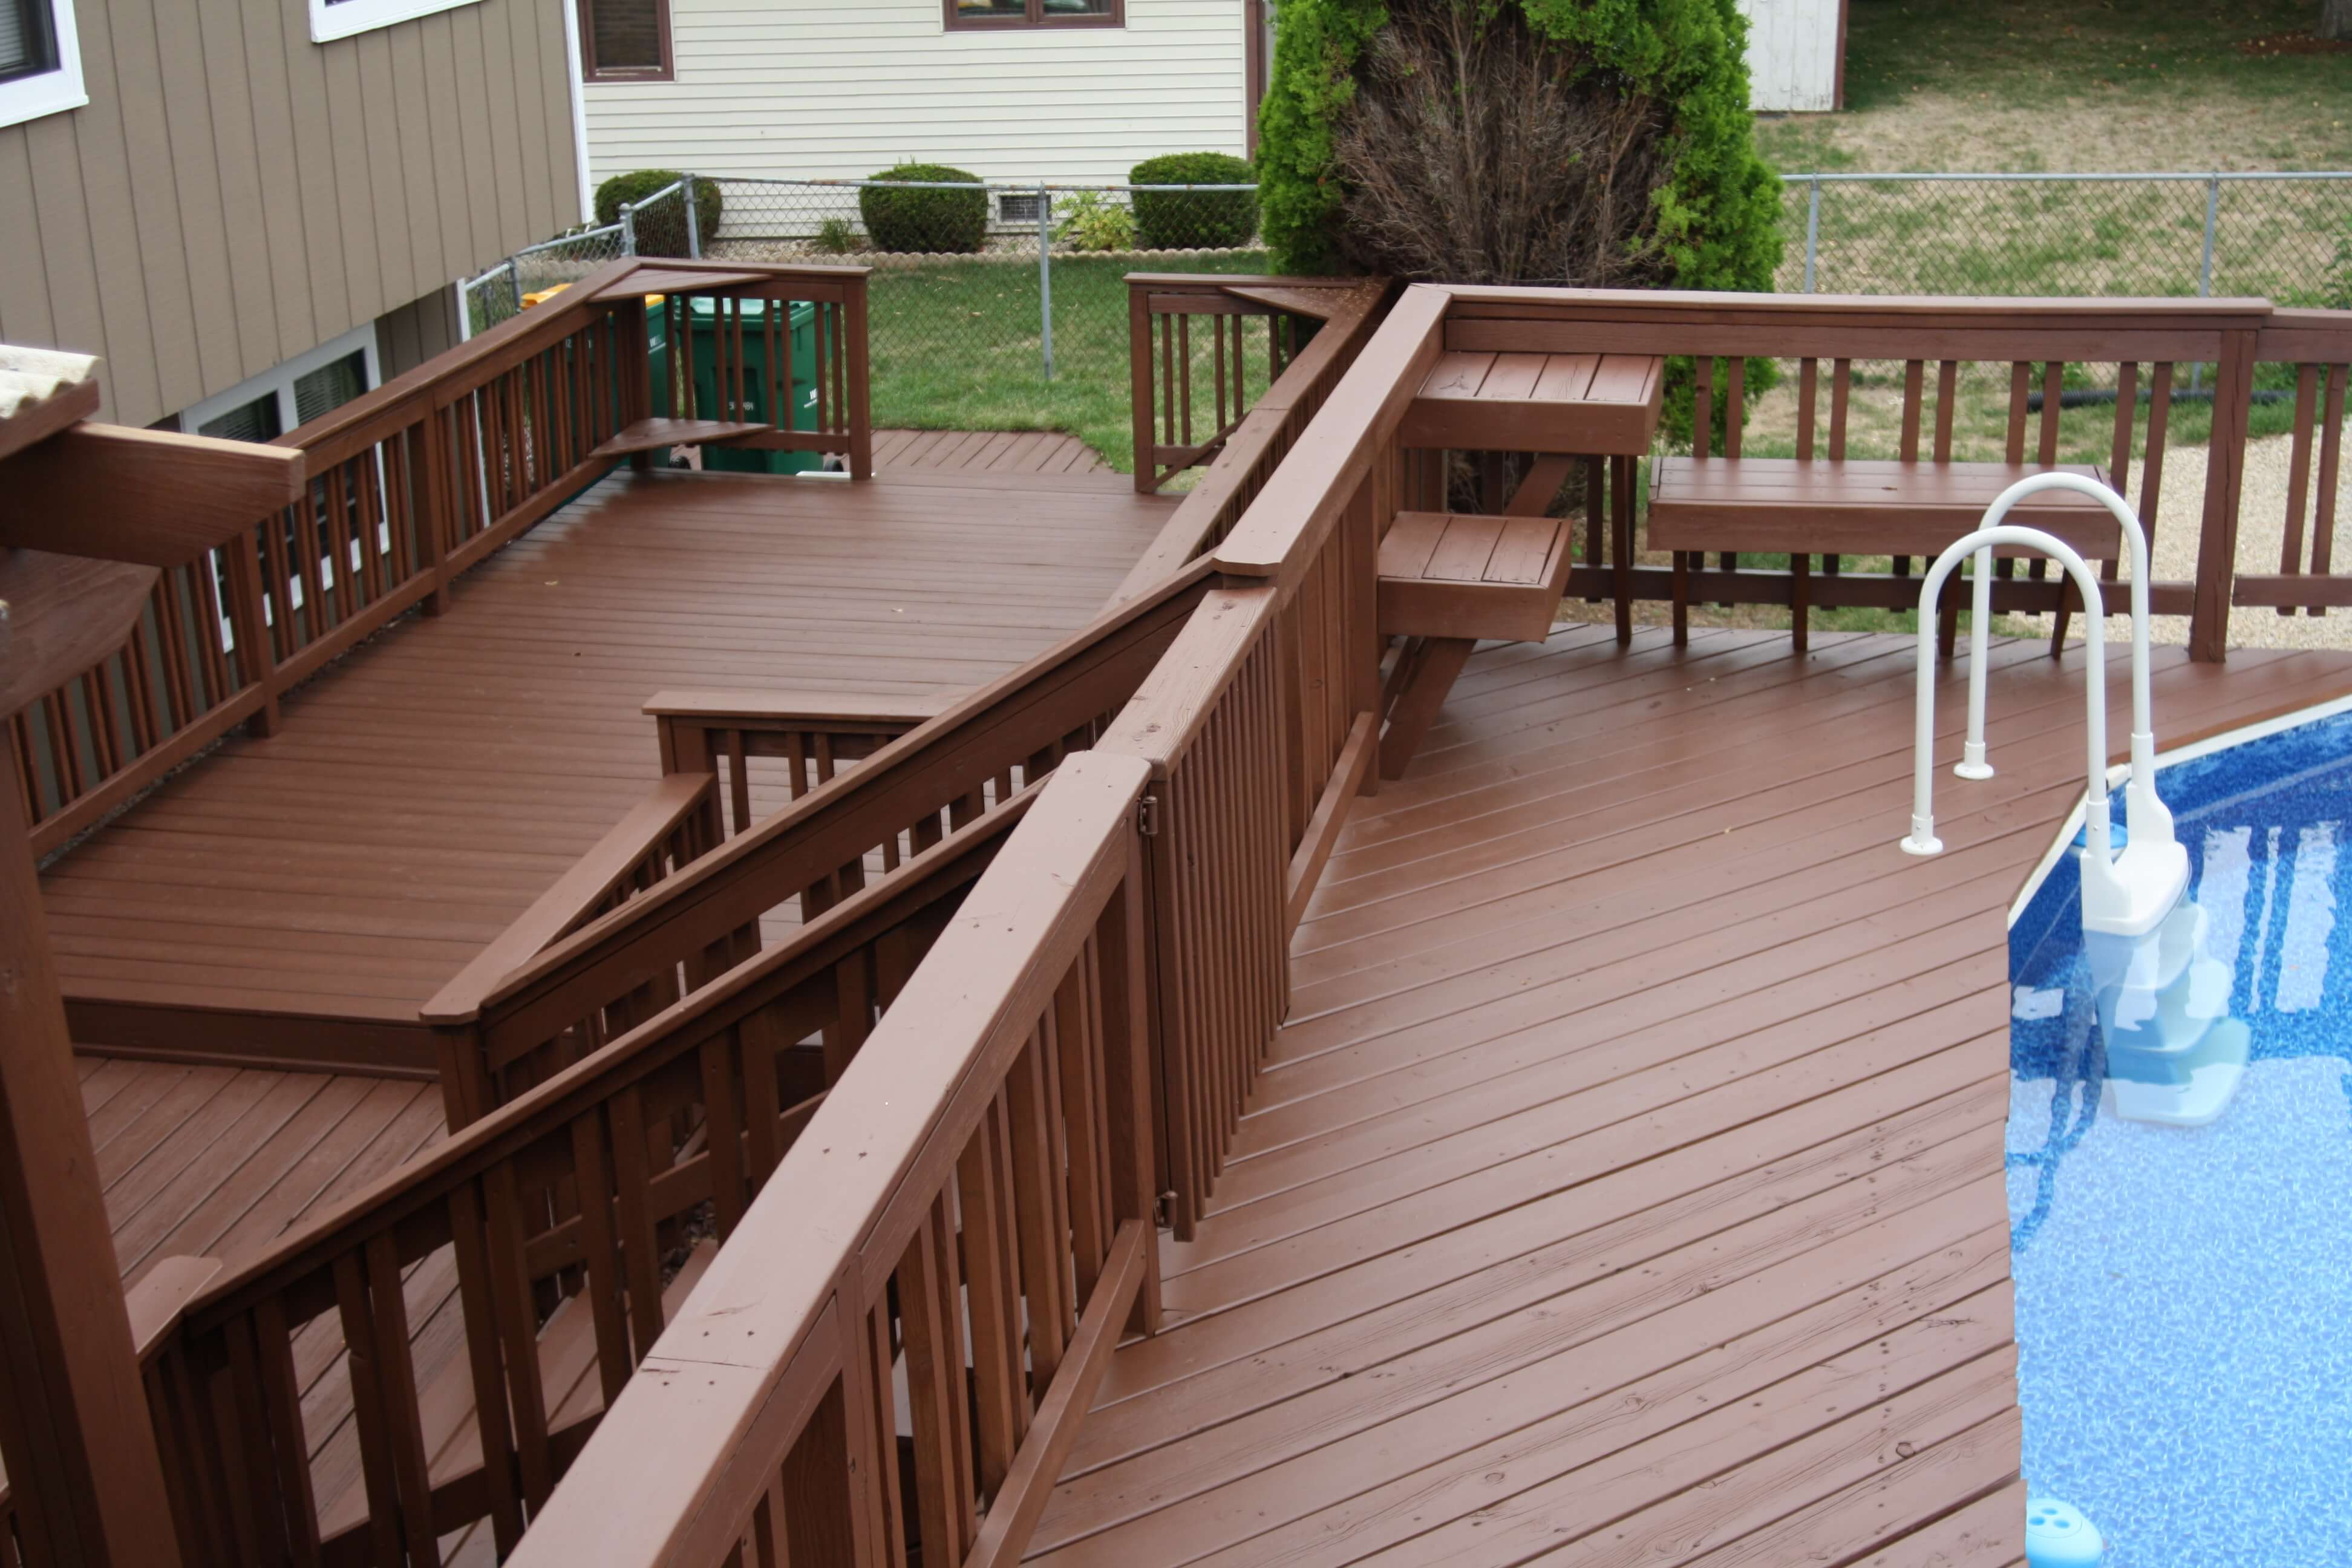 Bi-level deck adjacent to a pool. Treated with a dark semi transparent stain.